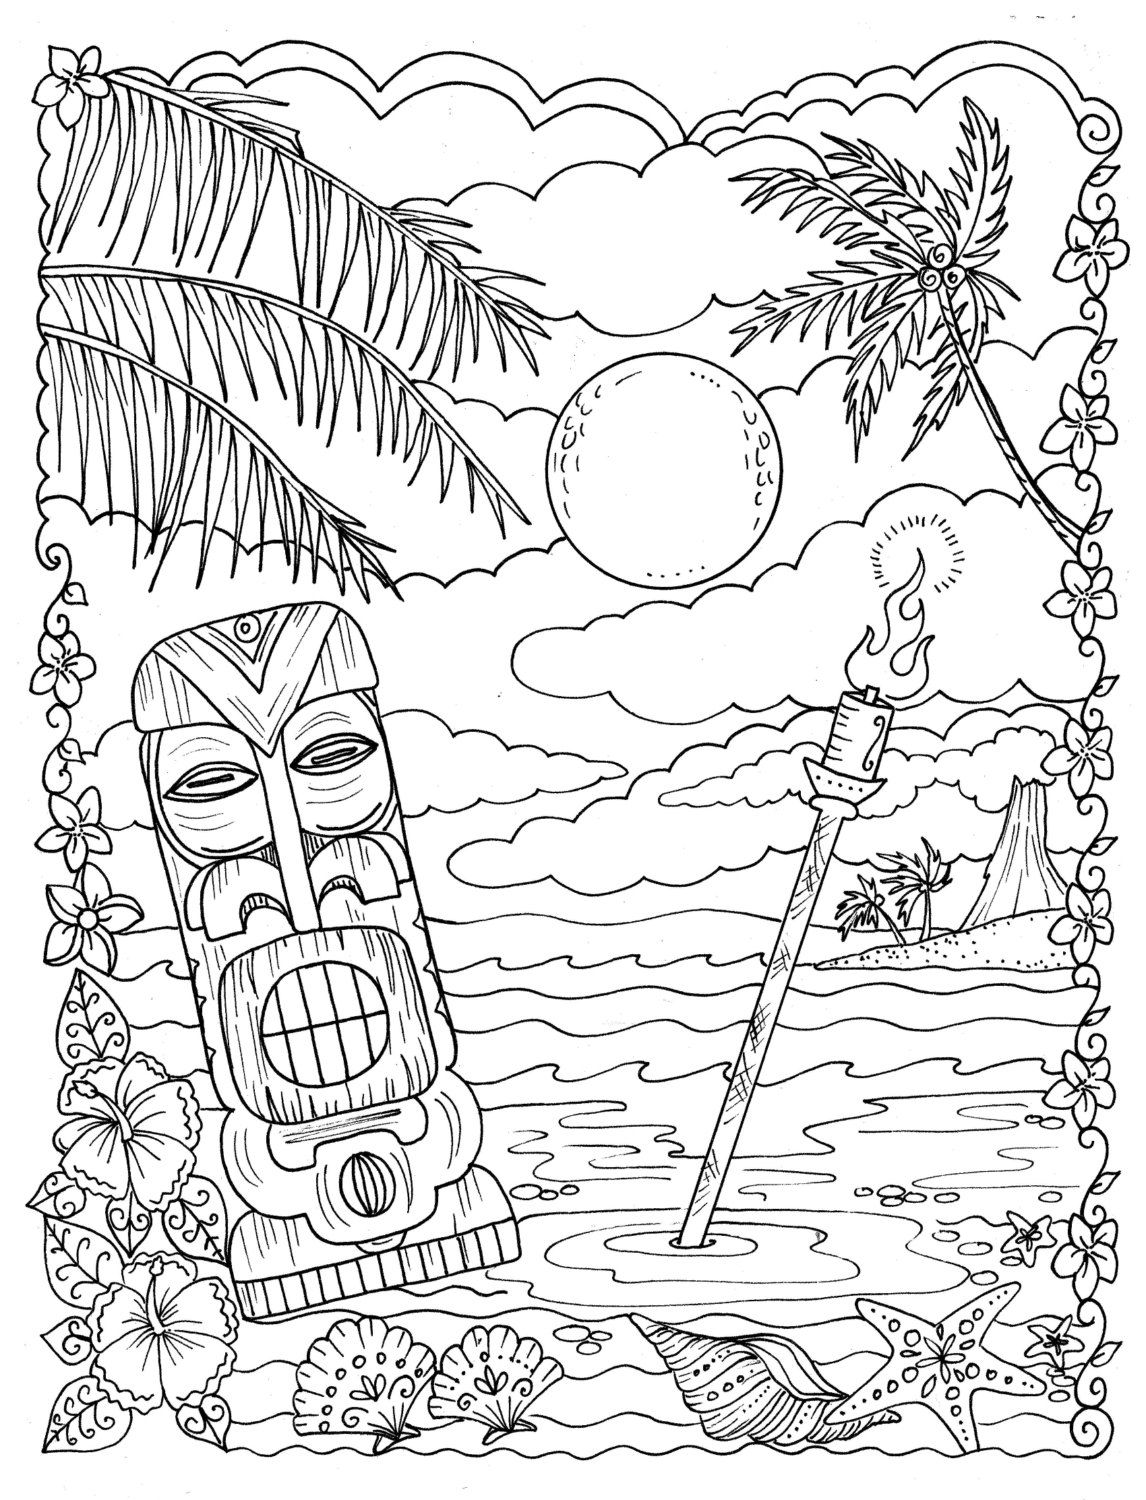 5 Pages Beachy Escape Coloring Digital Color Pages Shells Ocean